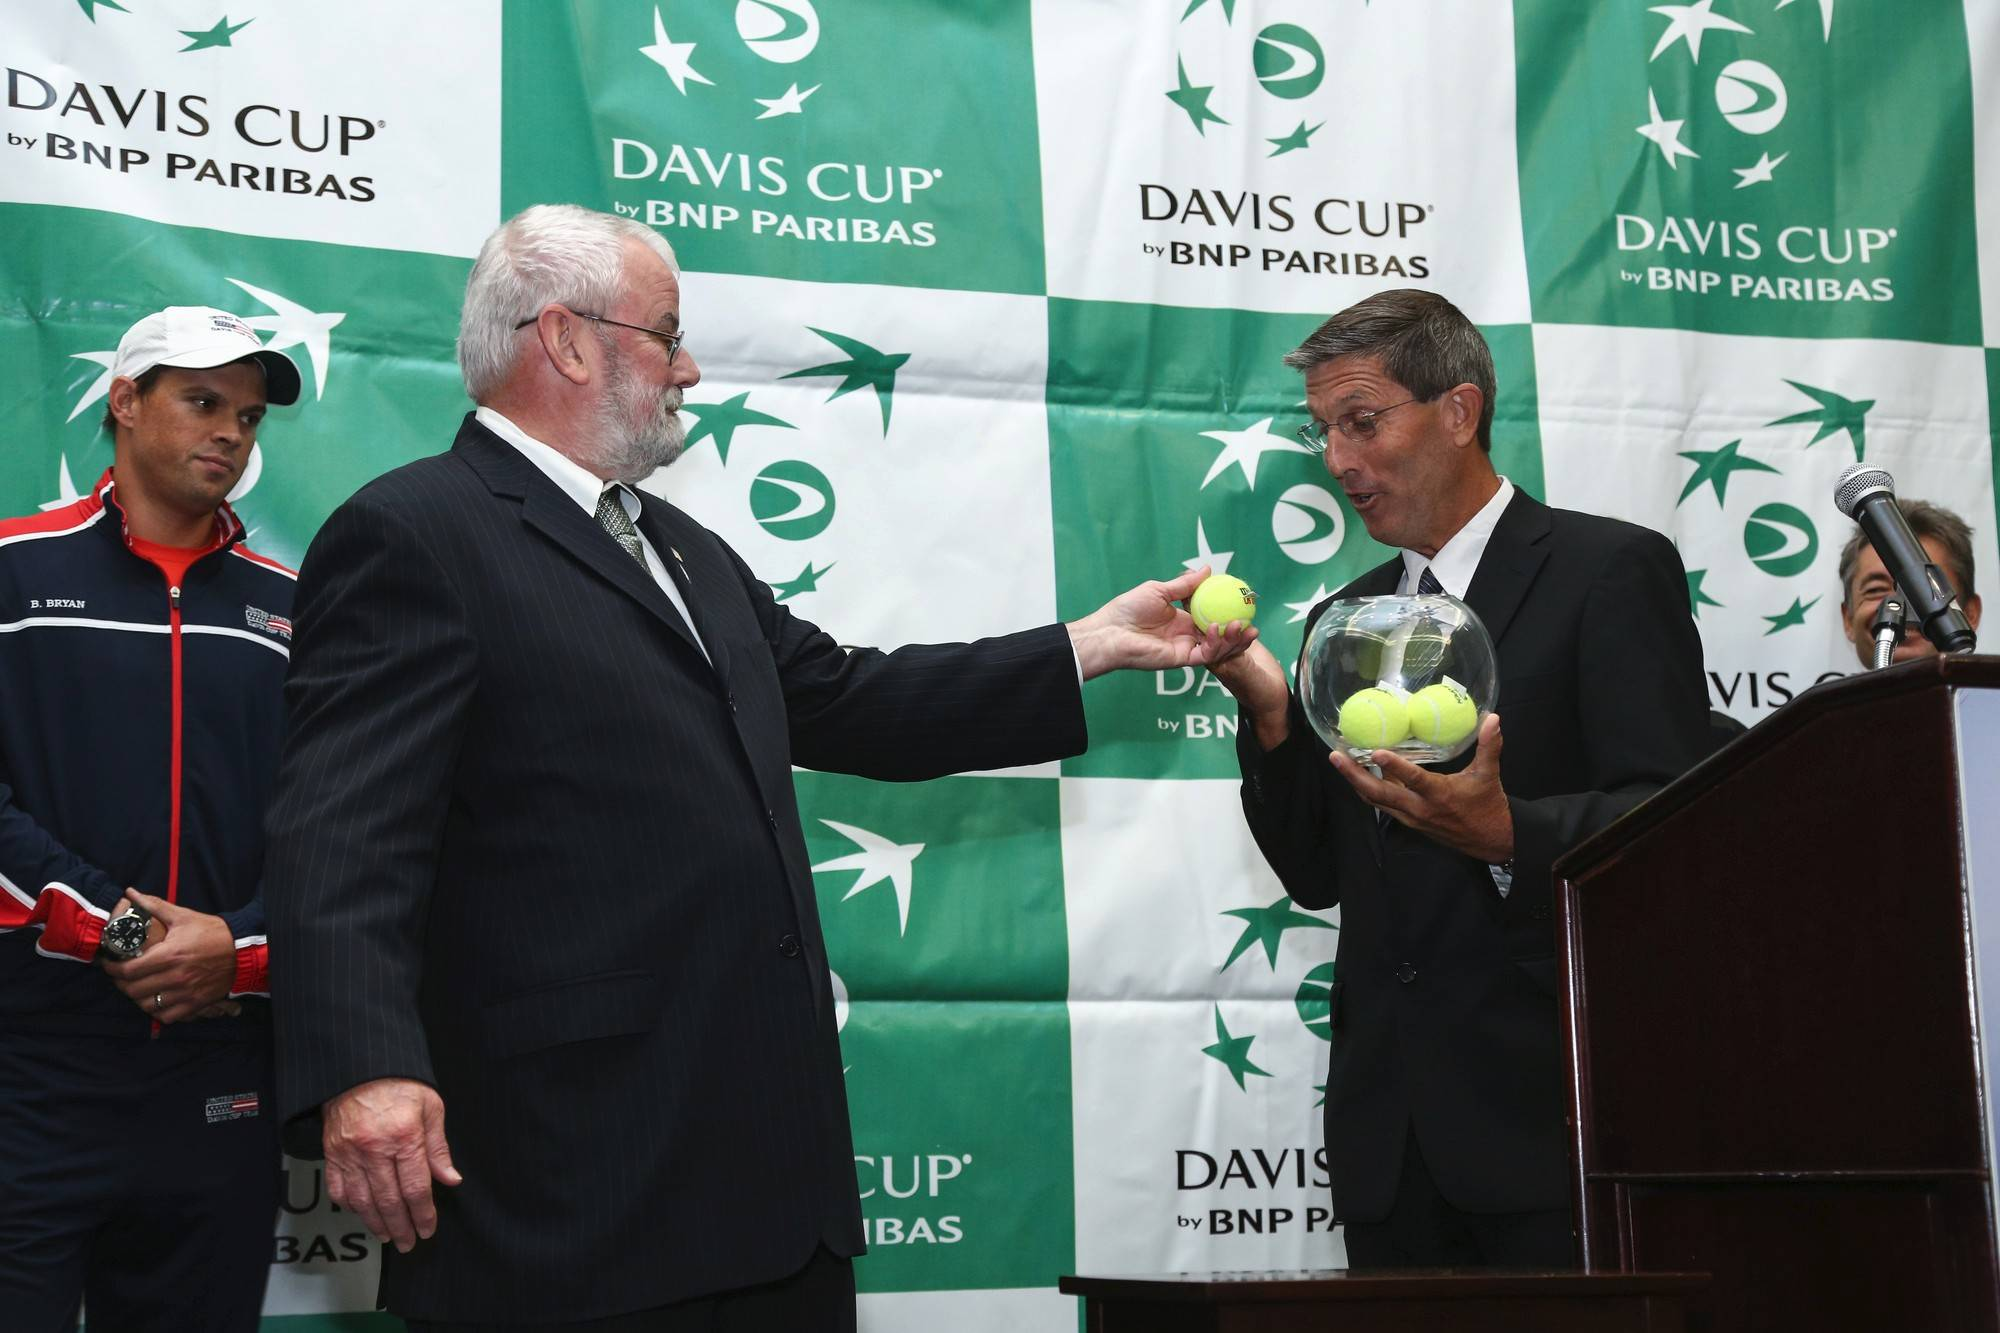 Davis Cup a big win for suburbs, mayor says